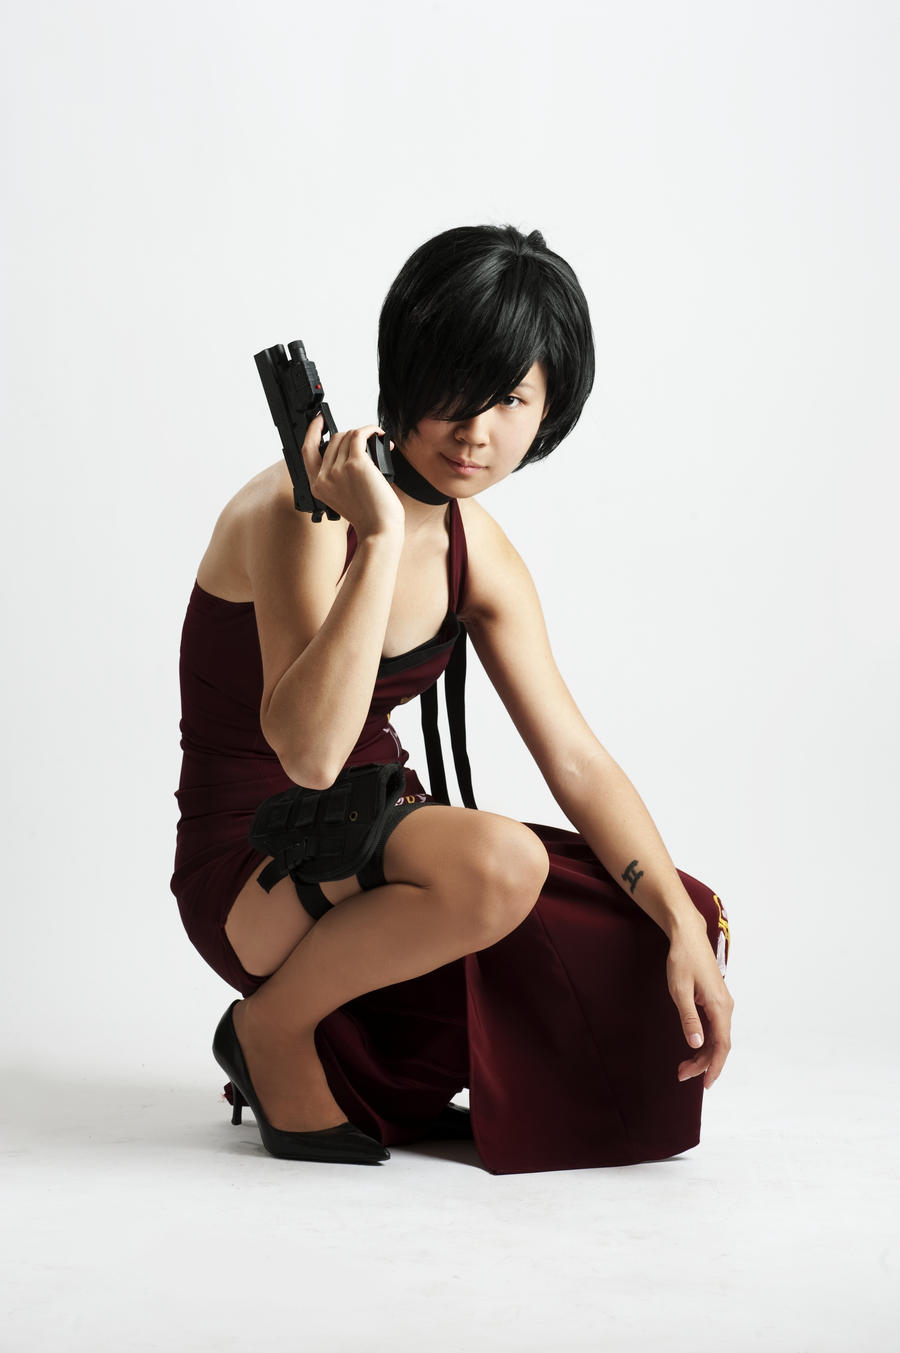 Ada Wong Re-Done 2a by jagged-eye